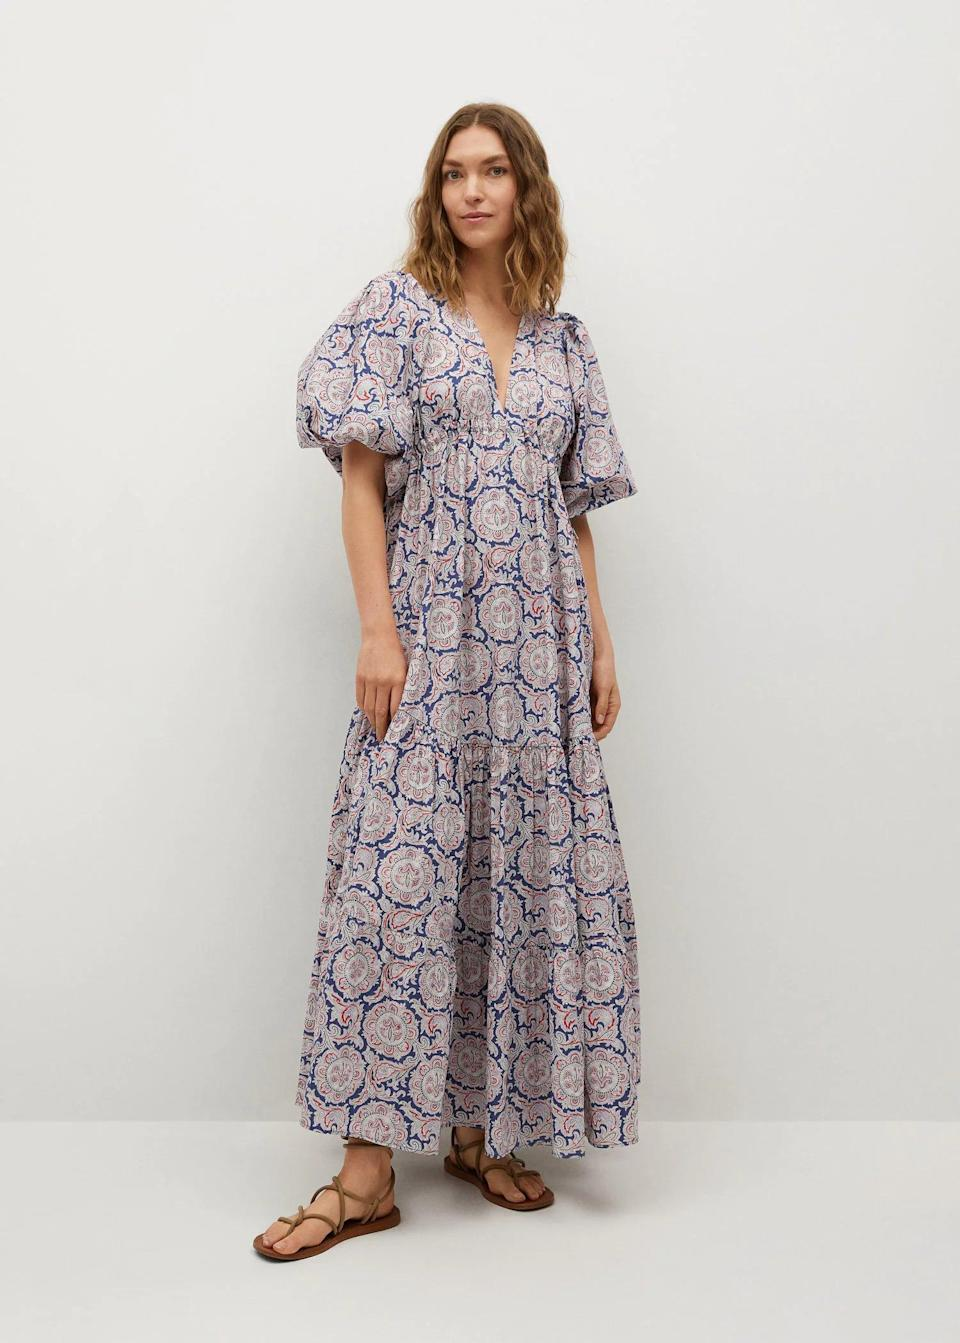 <p>This <span>Mango Printed Maxi Dress</span> ($120, originally $200) will make a statement whether you're headed to brunch or a museum. Pair it with high-heeled boots for the perfect transitional look.</p>